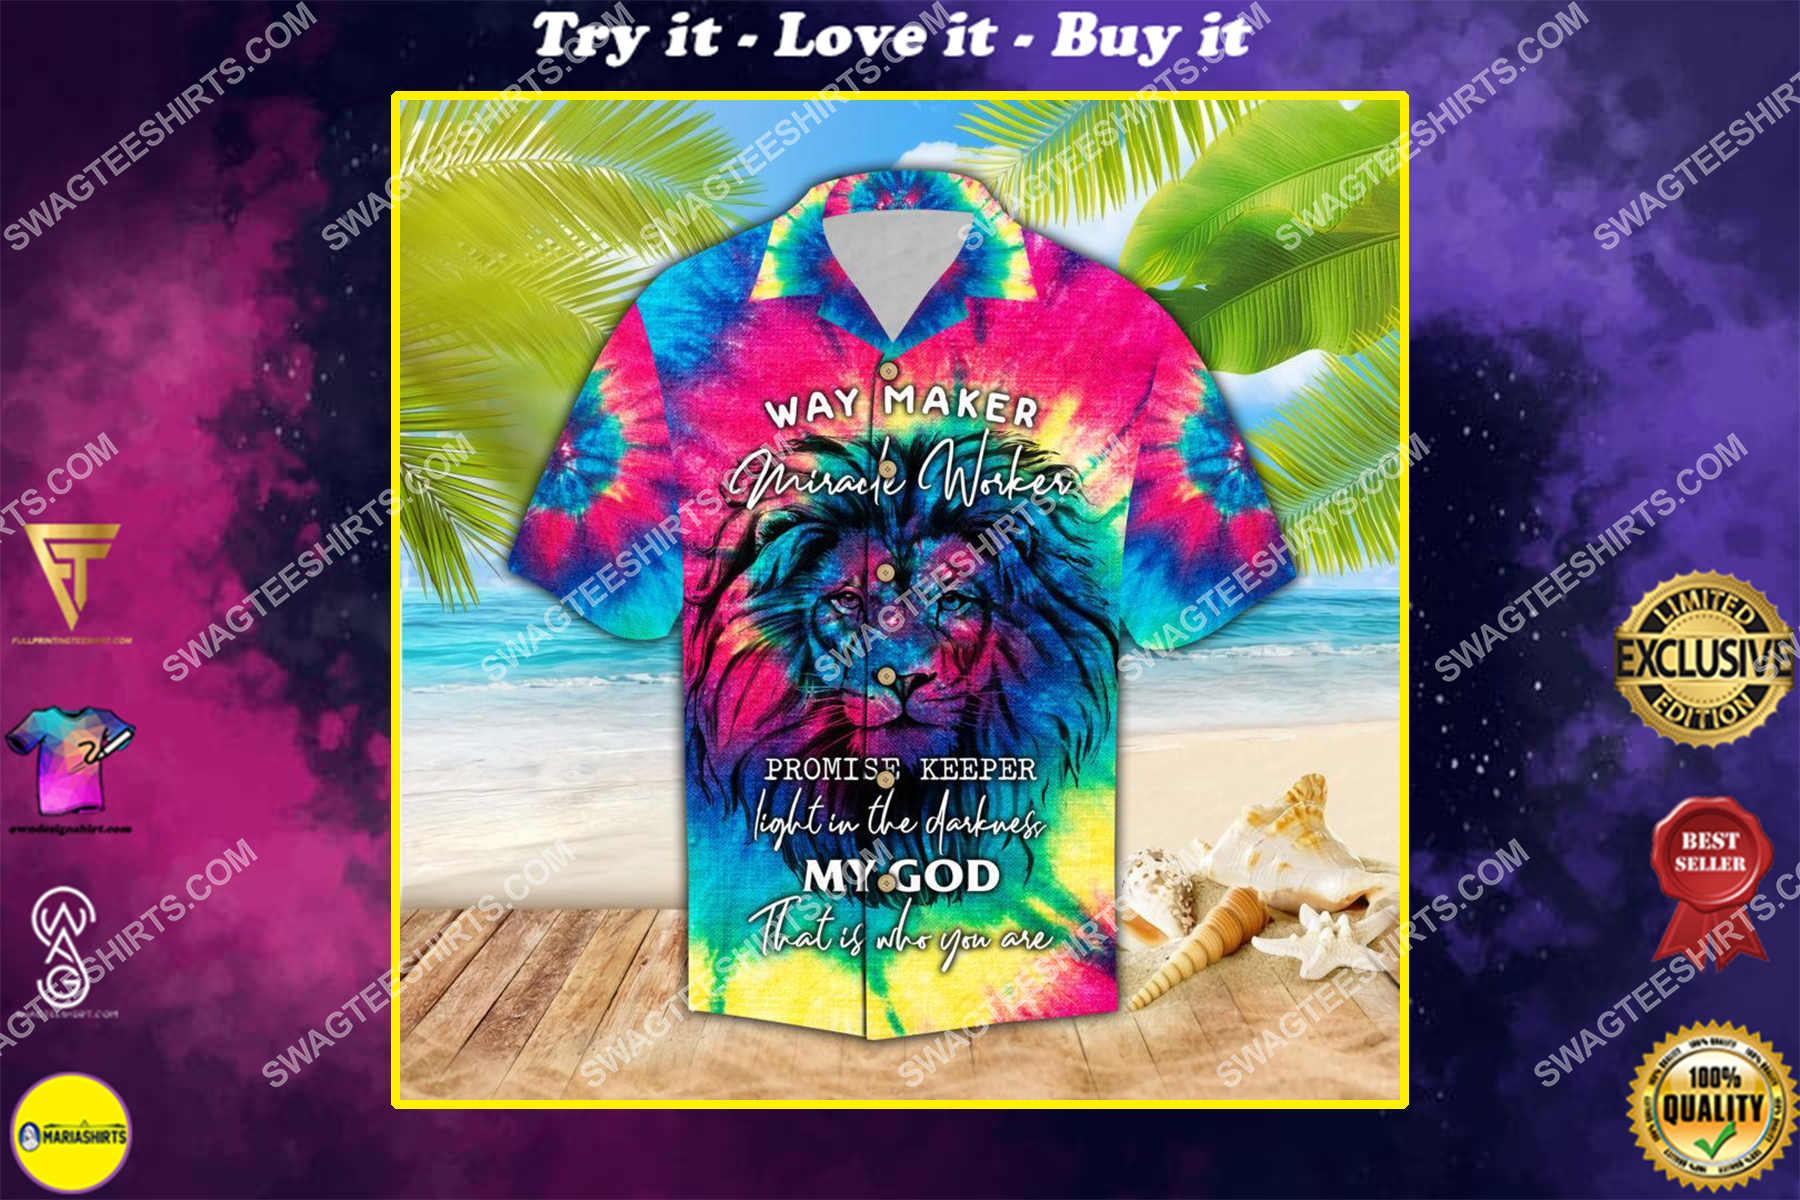 way maker miracle worker promise keeper light in the darkness hawaiian shirt